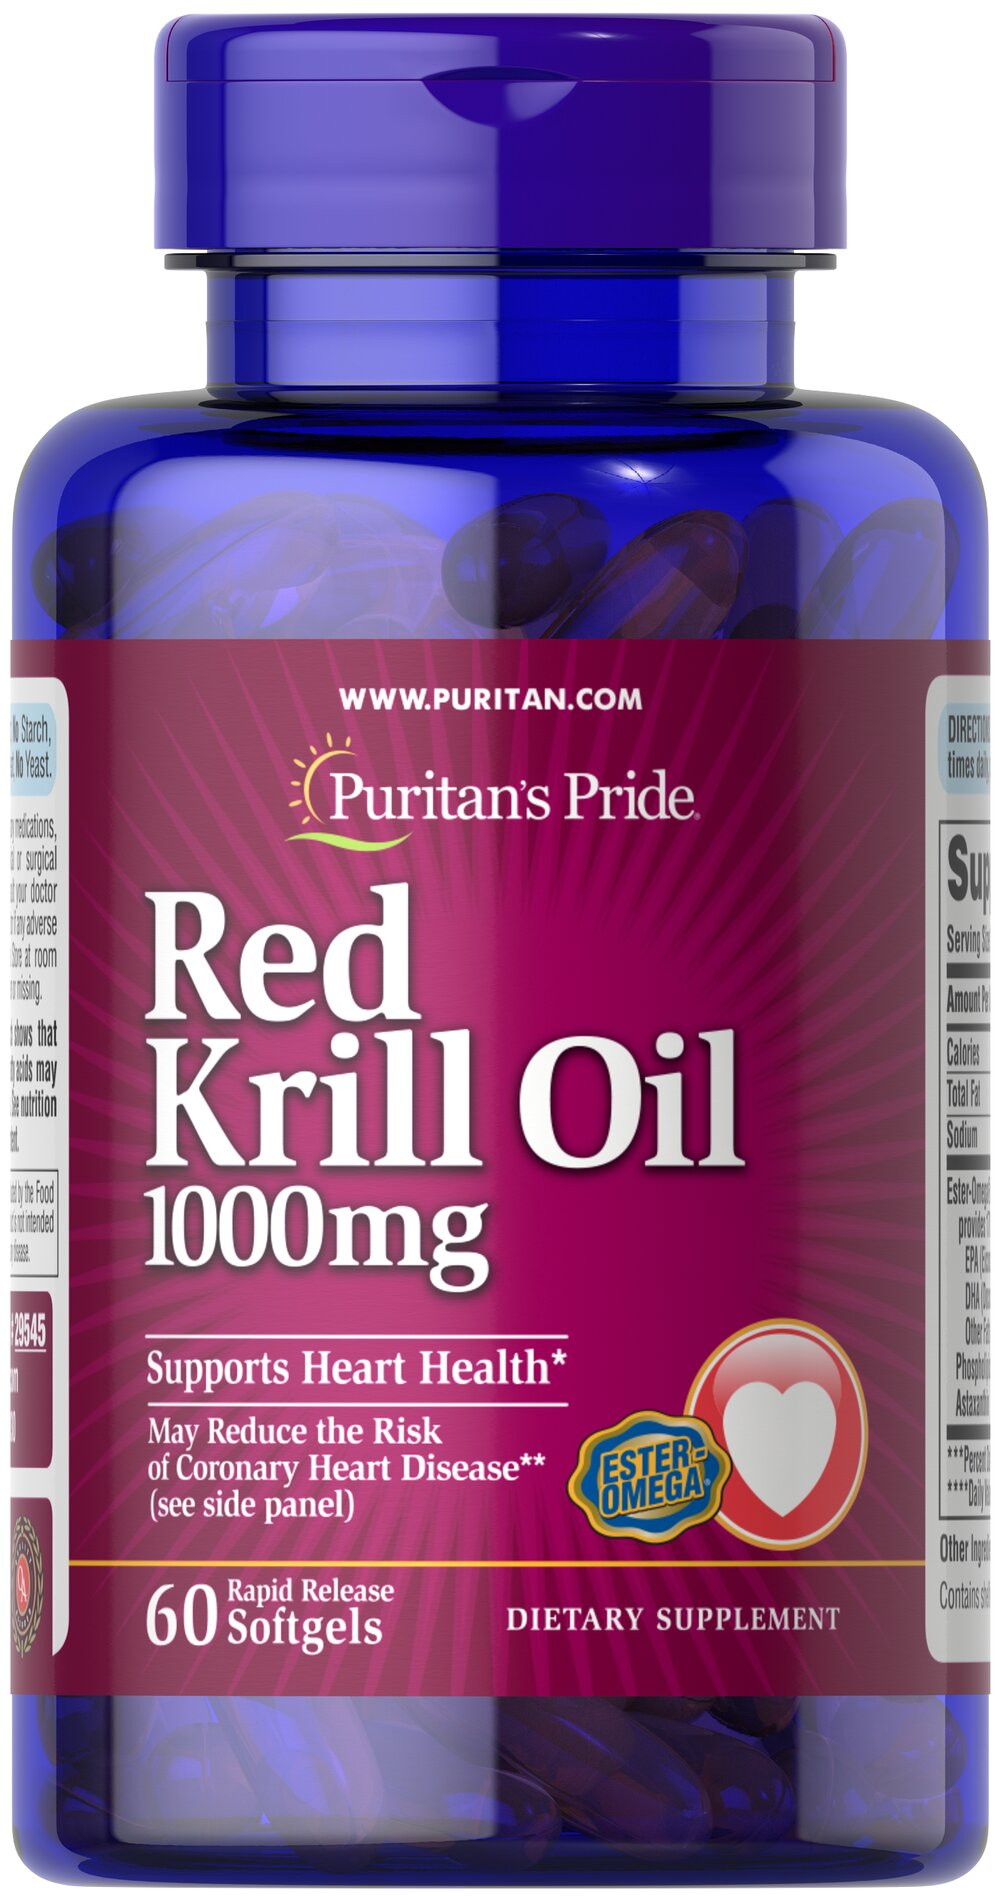 Red Krill Oil 1000 mg (170 mg Active Omega-3)  60 Softgels 1000 mg $45.59